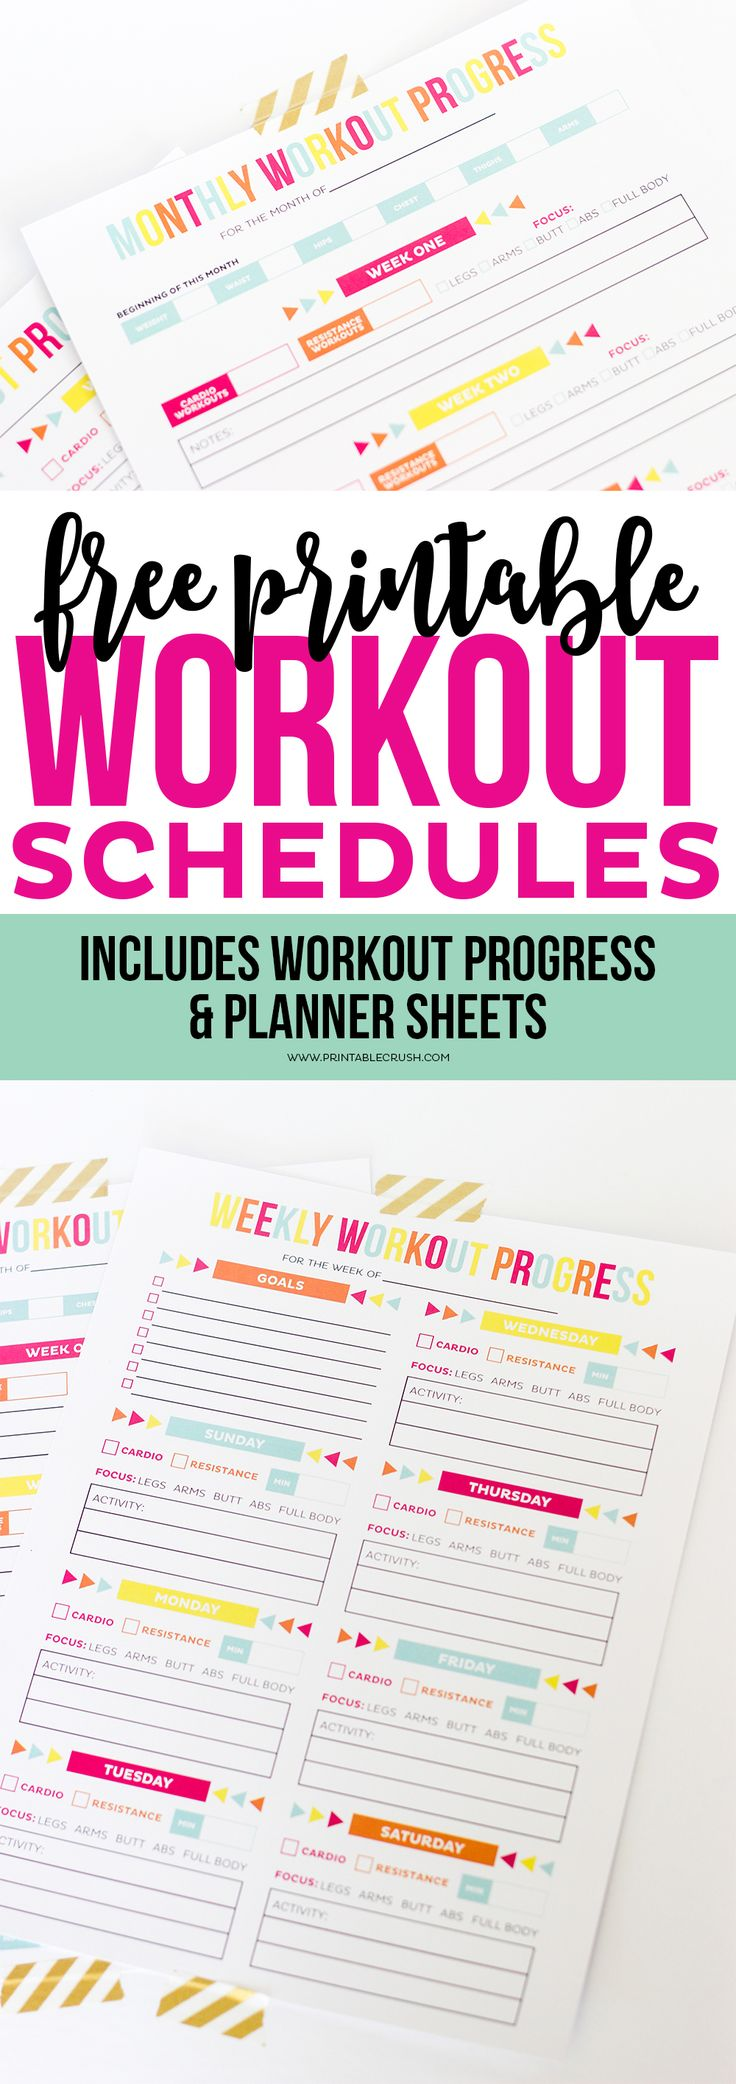 Download this FREE Printable Workout Schedule and Progress ...